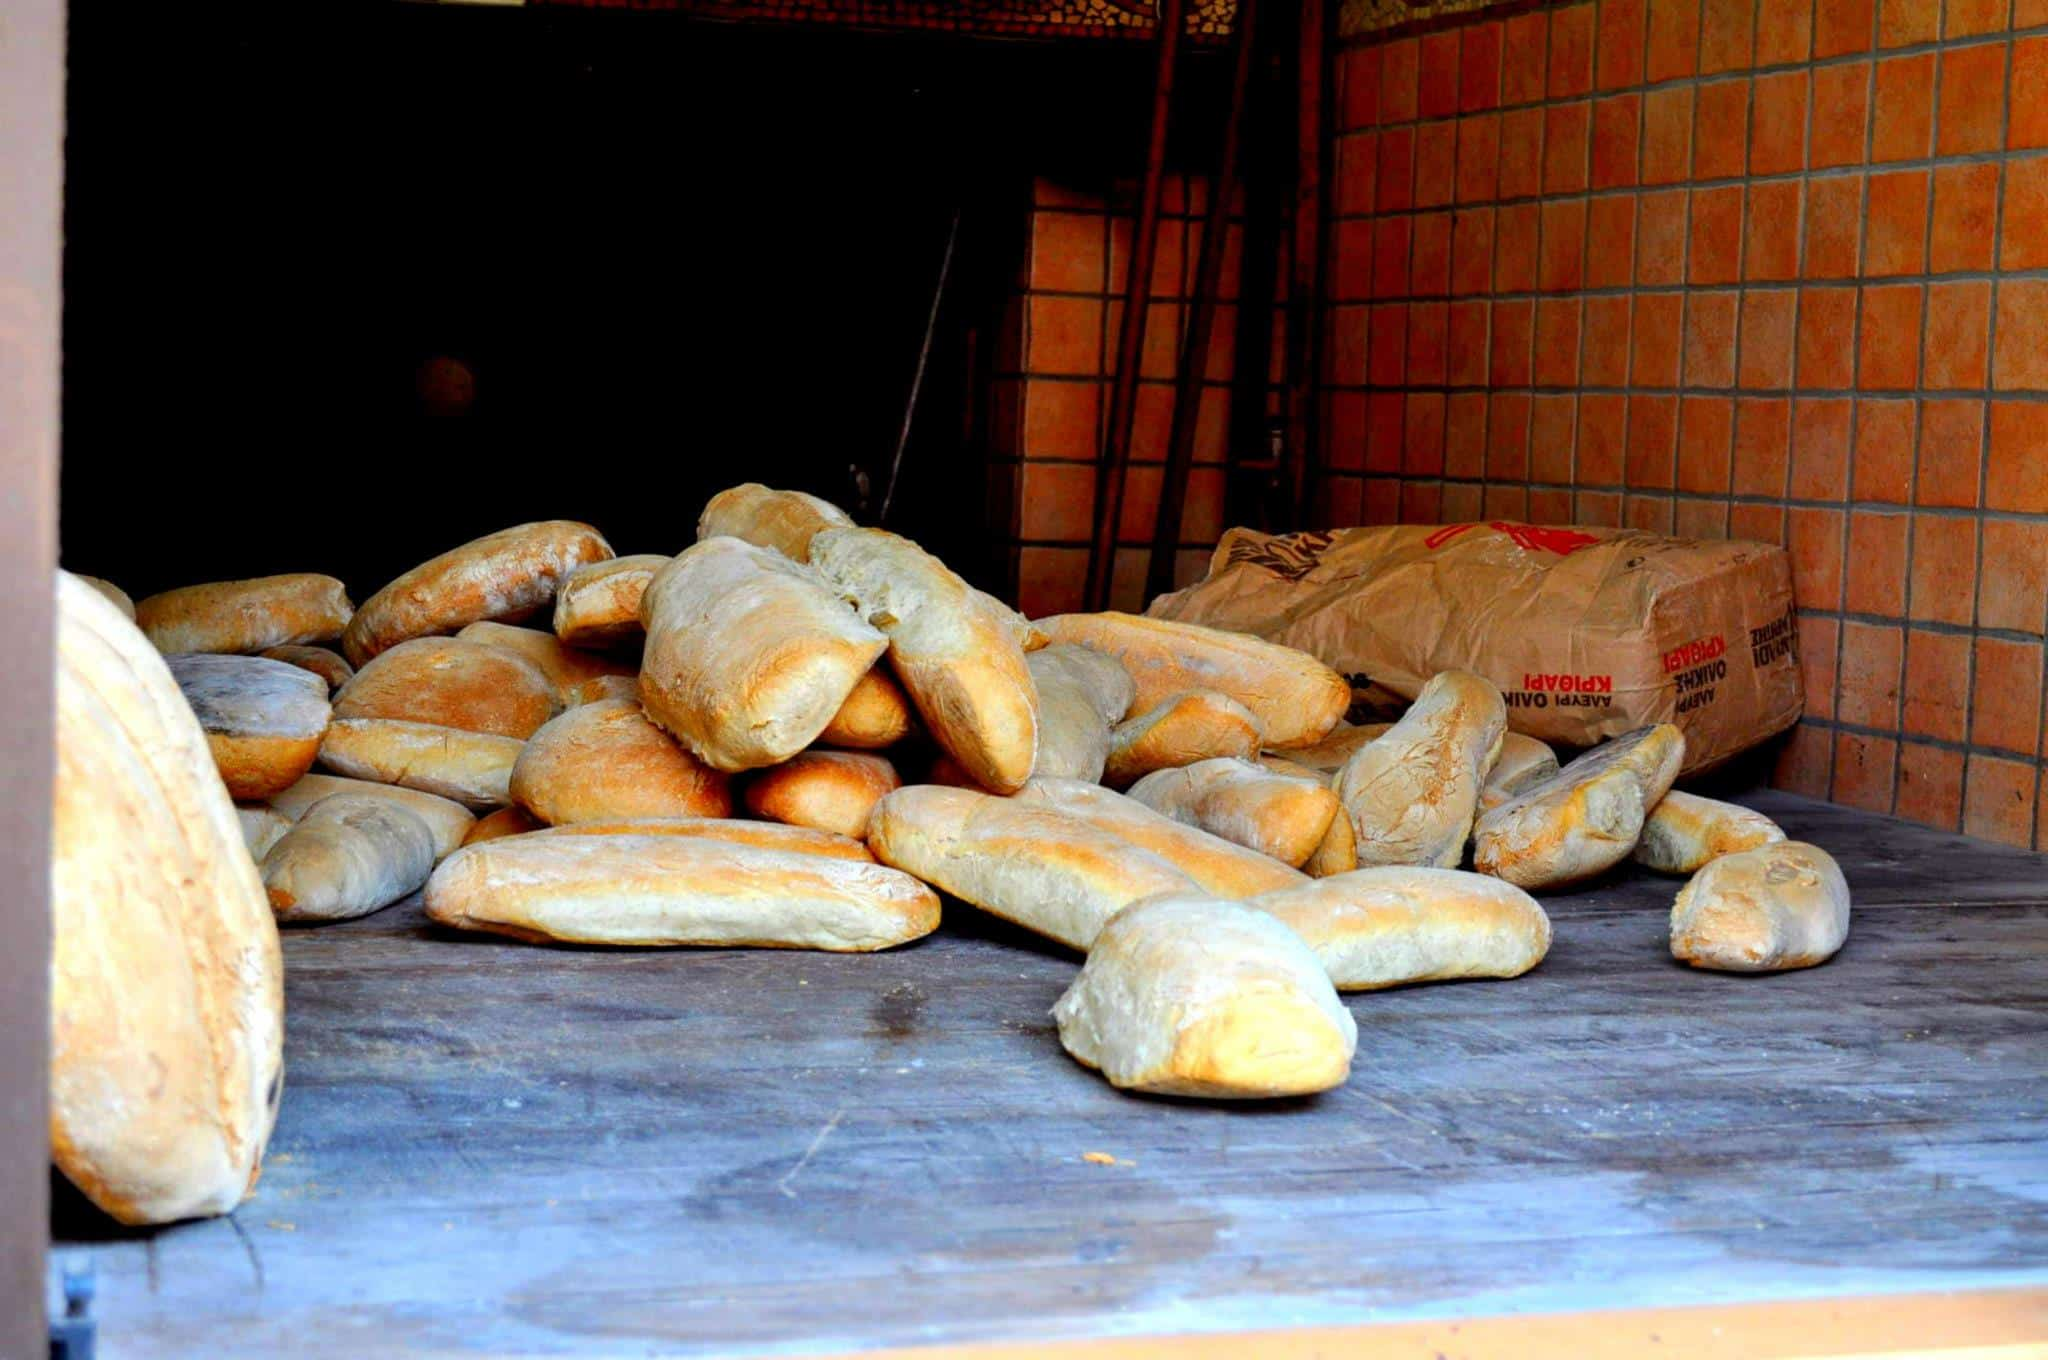 Greek Bakery - Things to know before traveling to Greece - Definitely Greece